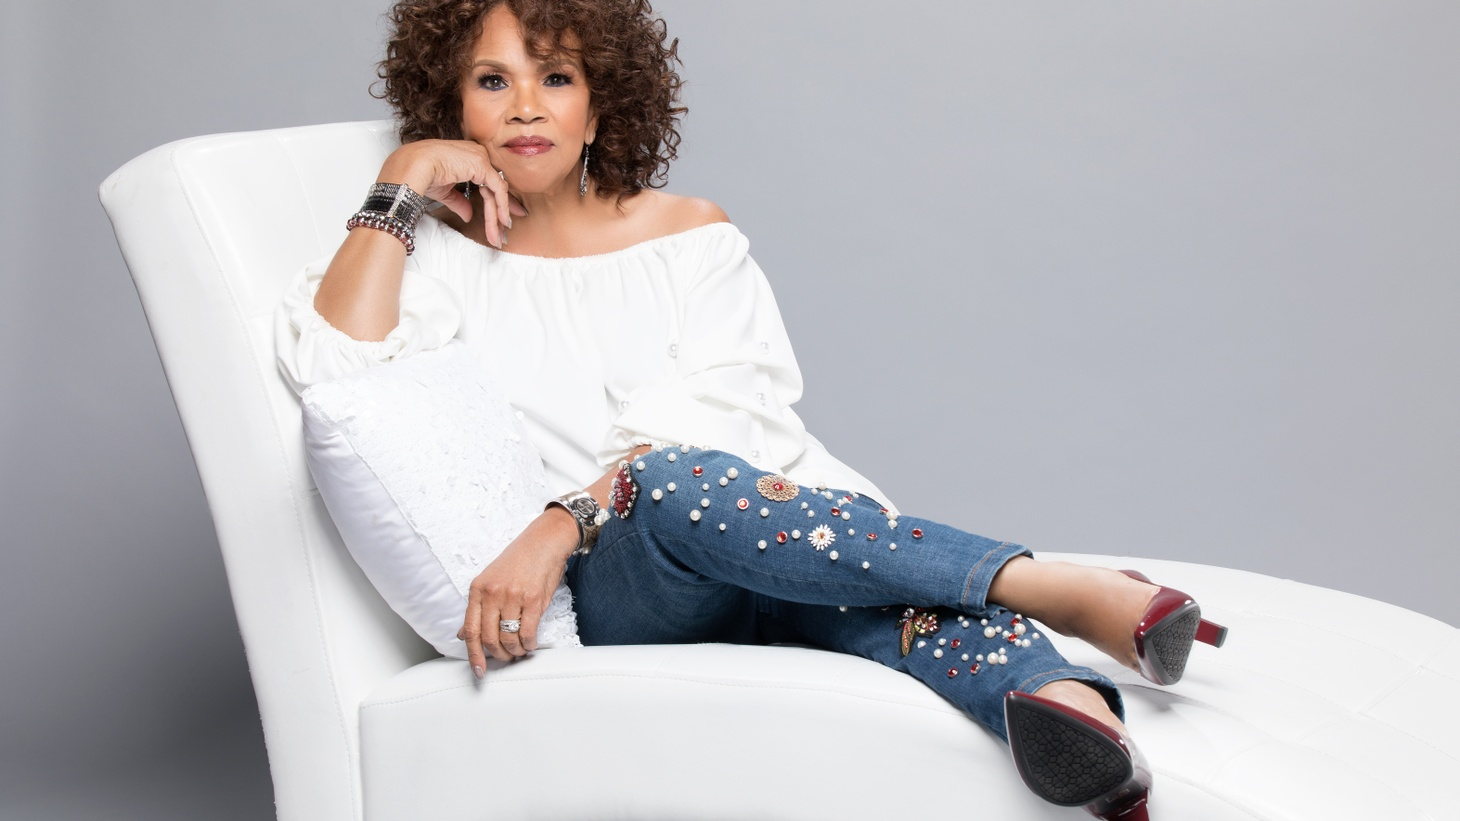 Legendary soul singer Candi Staton has had her highs and lows in her 50 year storied career. She's racked up hits in each decade in a plethora of styles.